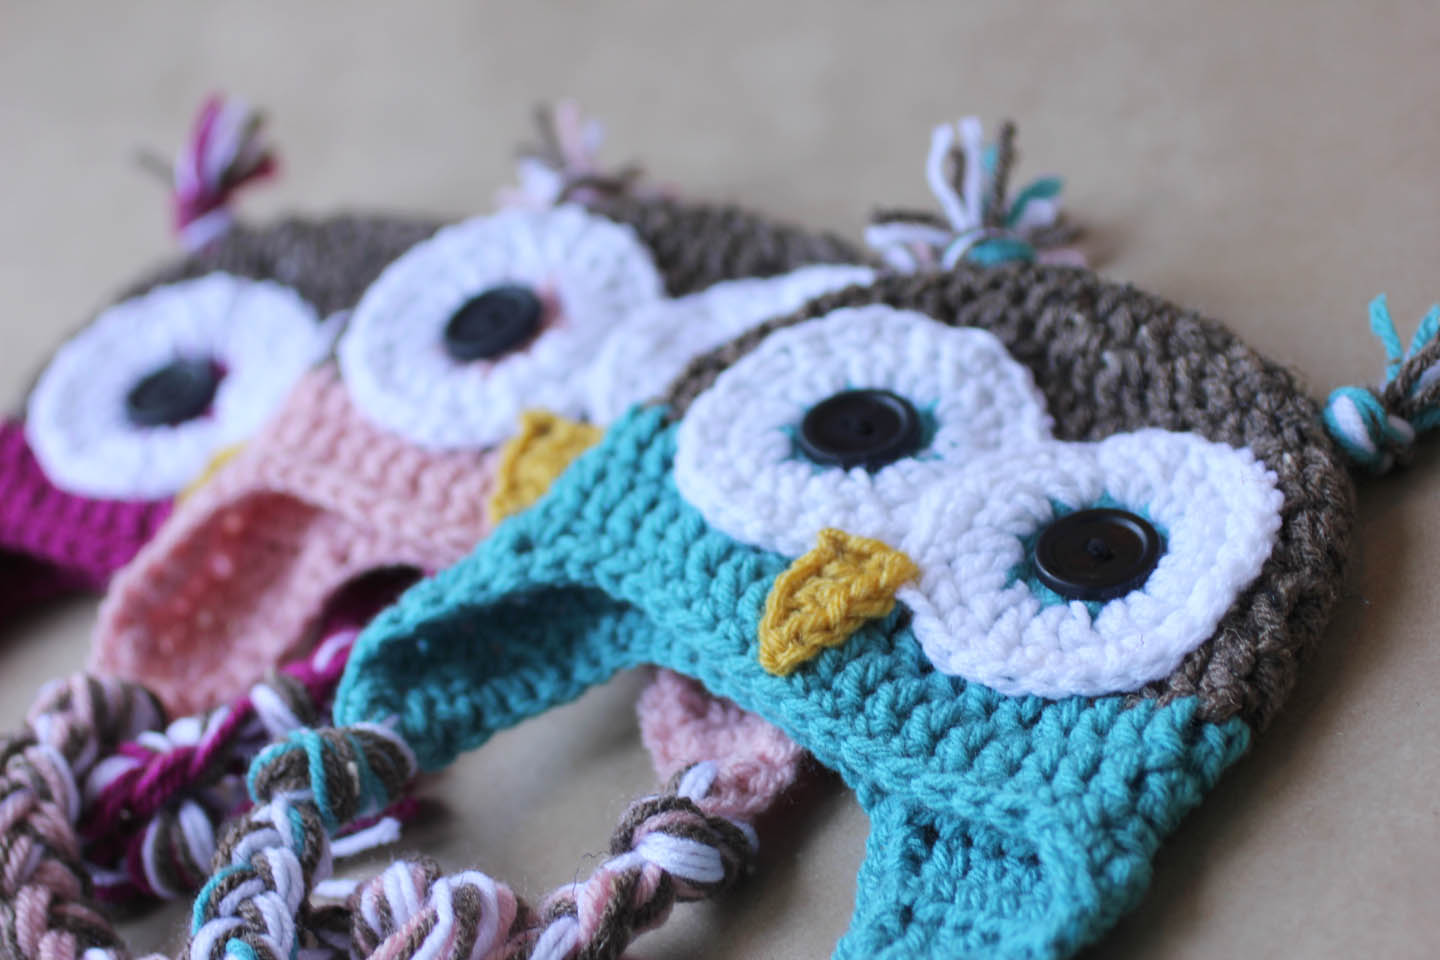 Crochet Pattern For Newborn Owl Hat : Make knot and braid approx 5 5 inches long knot trim ends